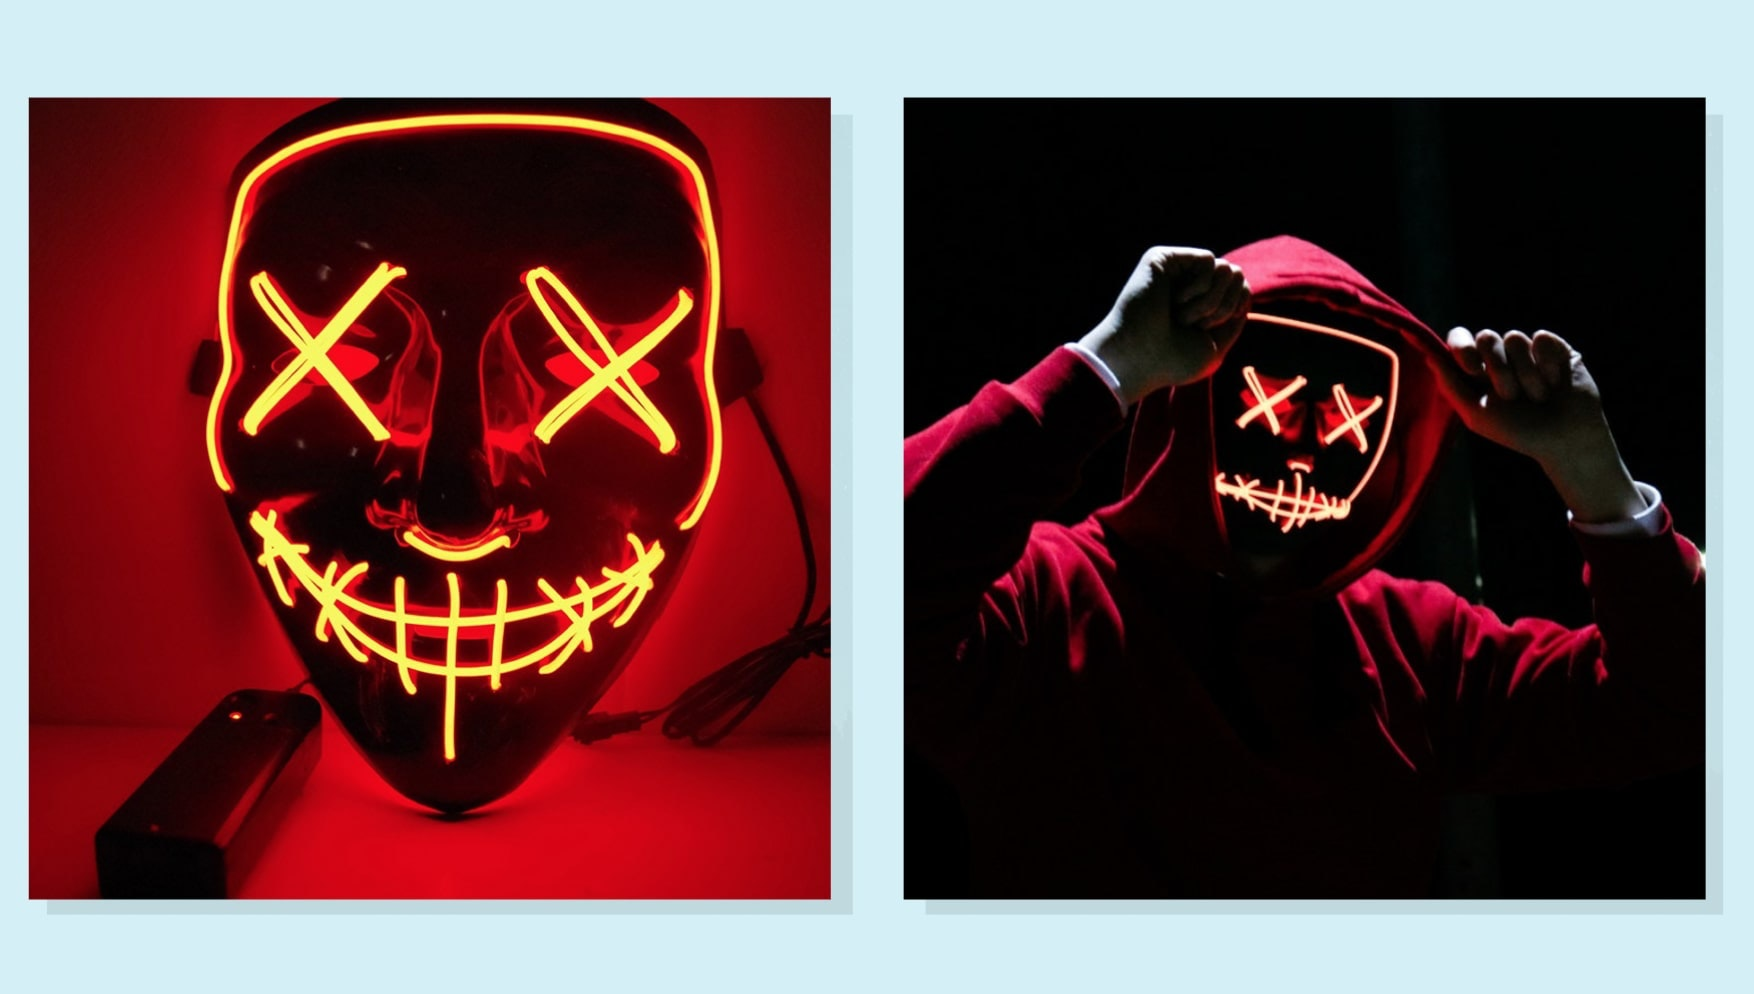 a side-by-side of a red light-up mask and someone wearing the same mask